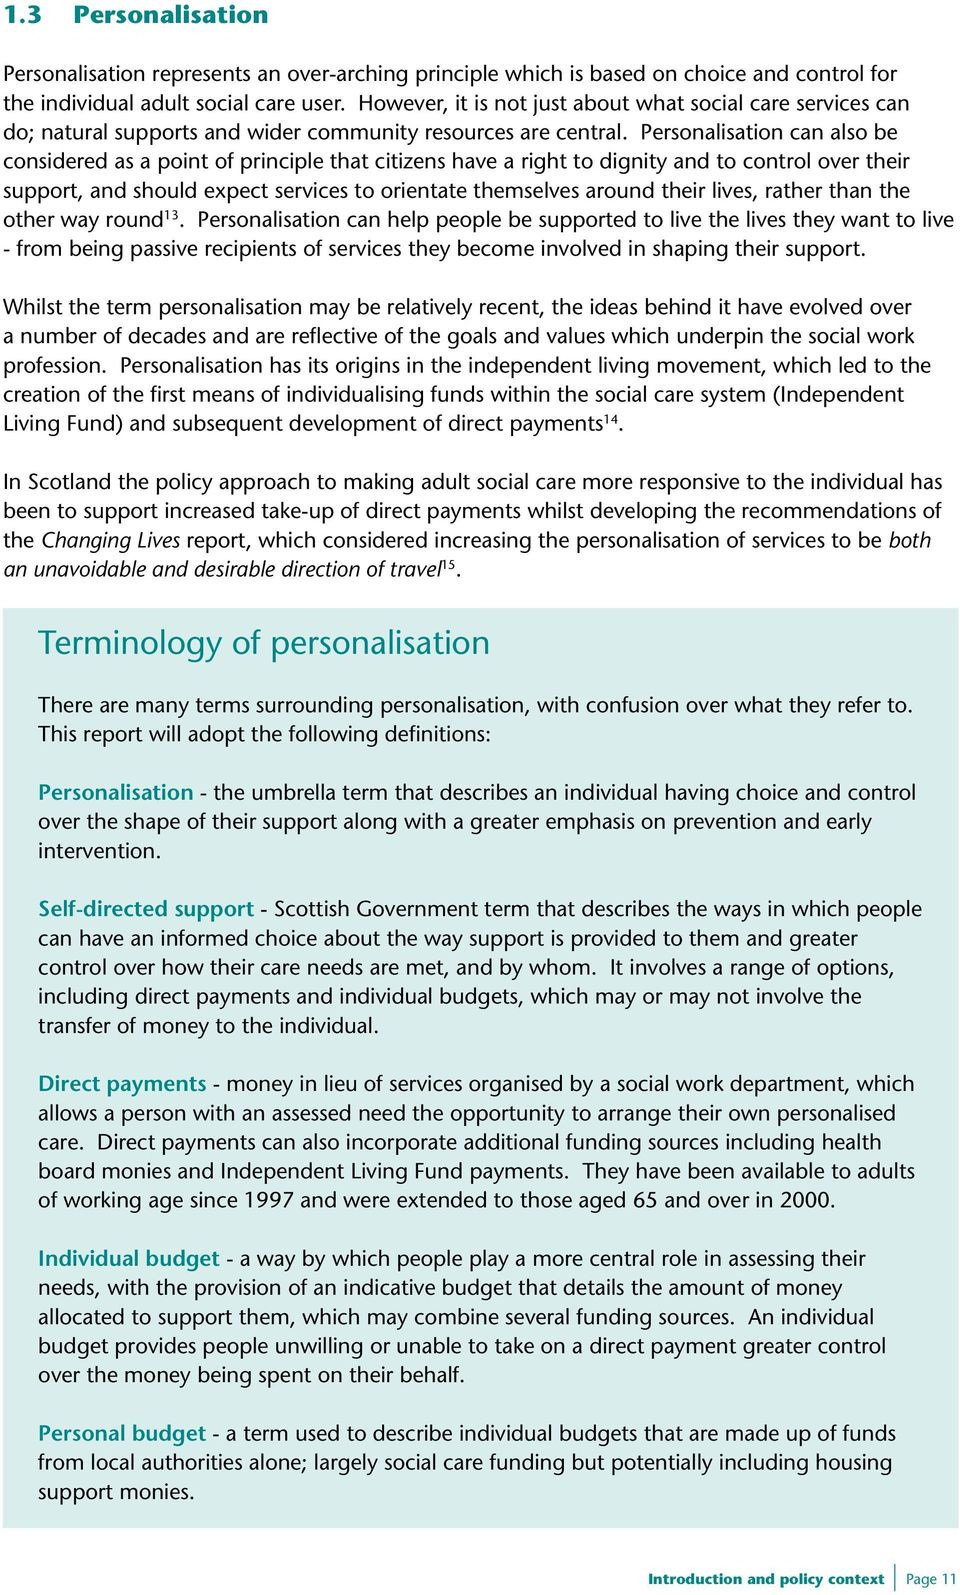 Personalisation can also be considered as a point of principle that citizens have a right to dignity and to control over their support, and should expect services to orientate themselves around their